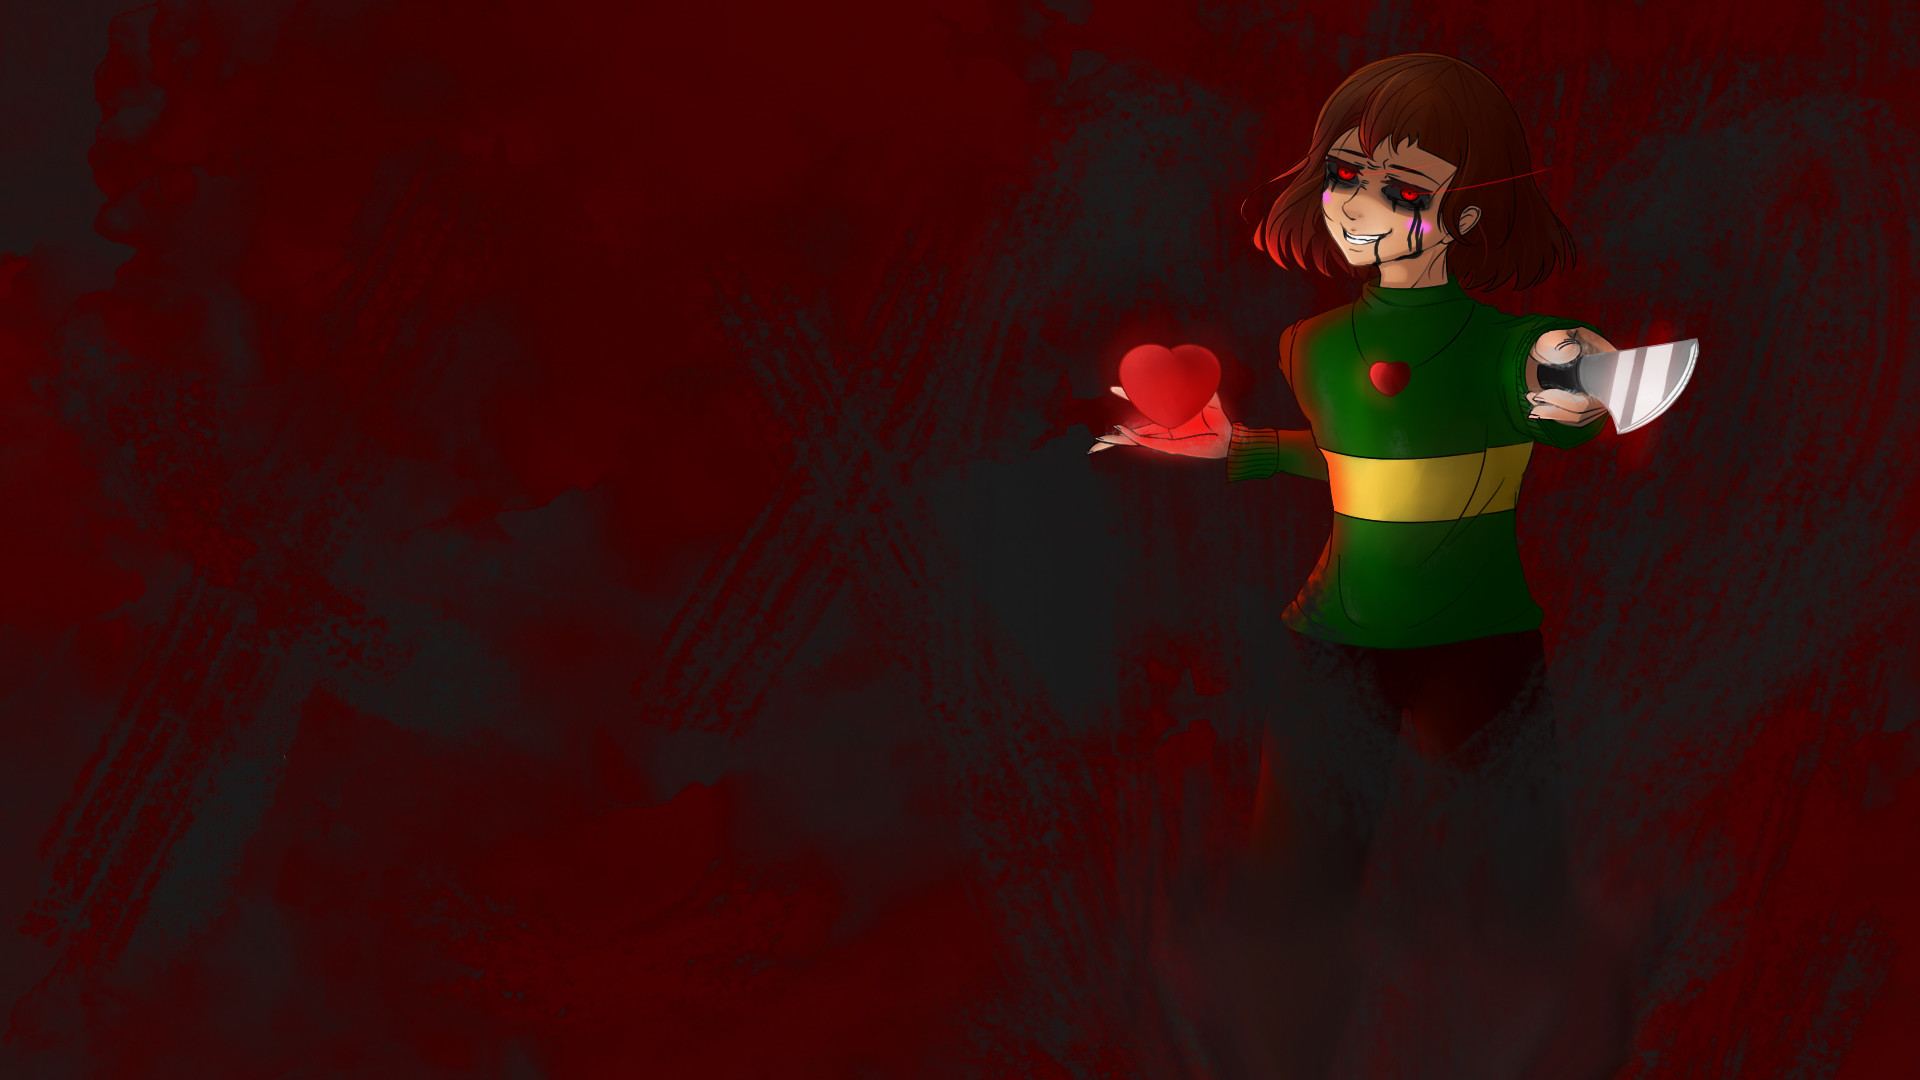 Chara – The World is Ending (Undertale Wallpaper) by DigitalColdI on .